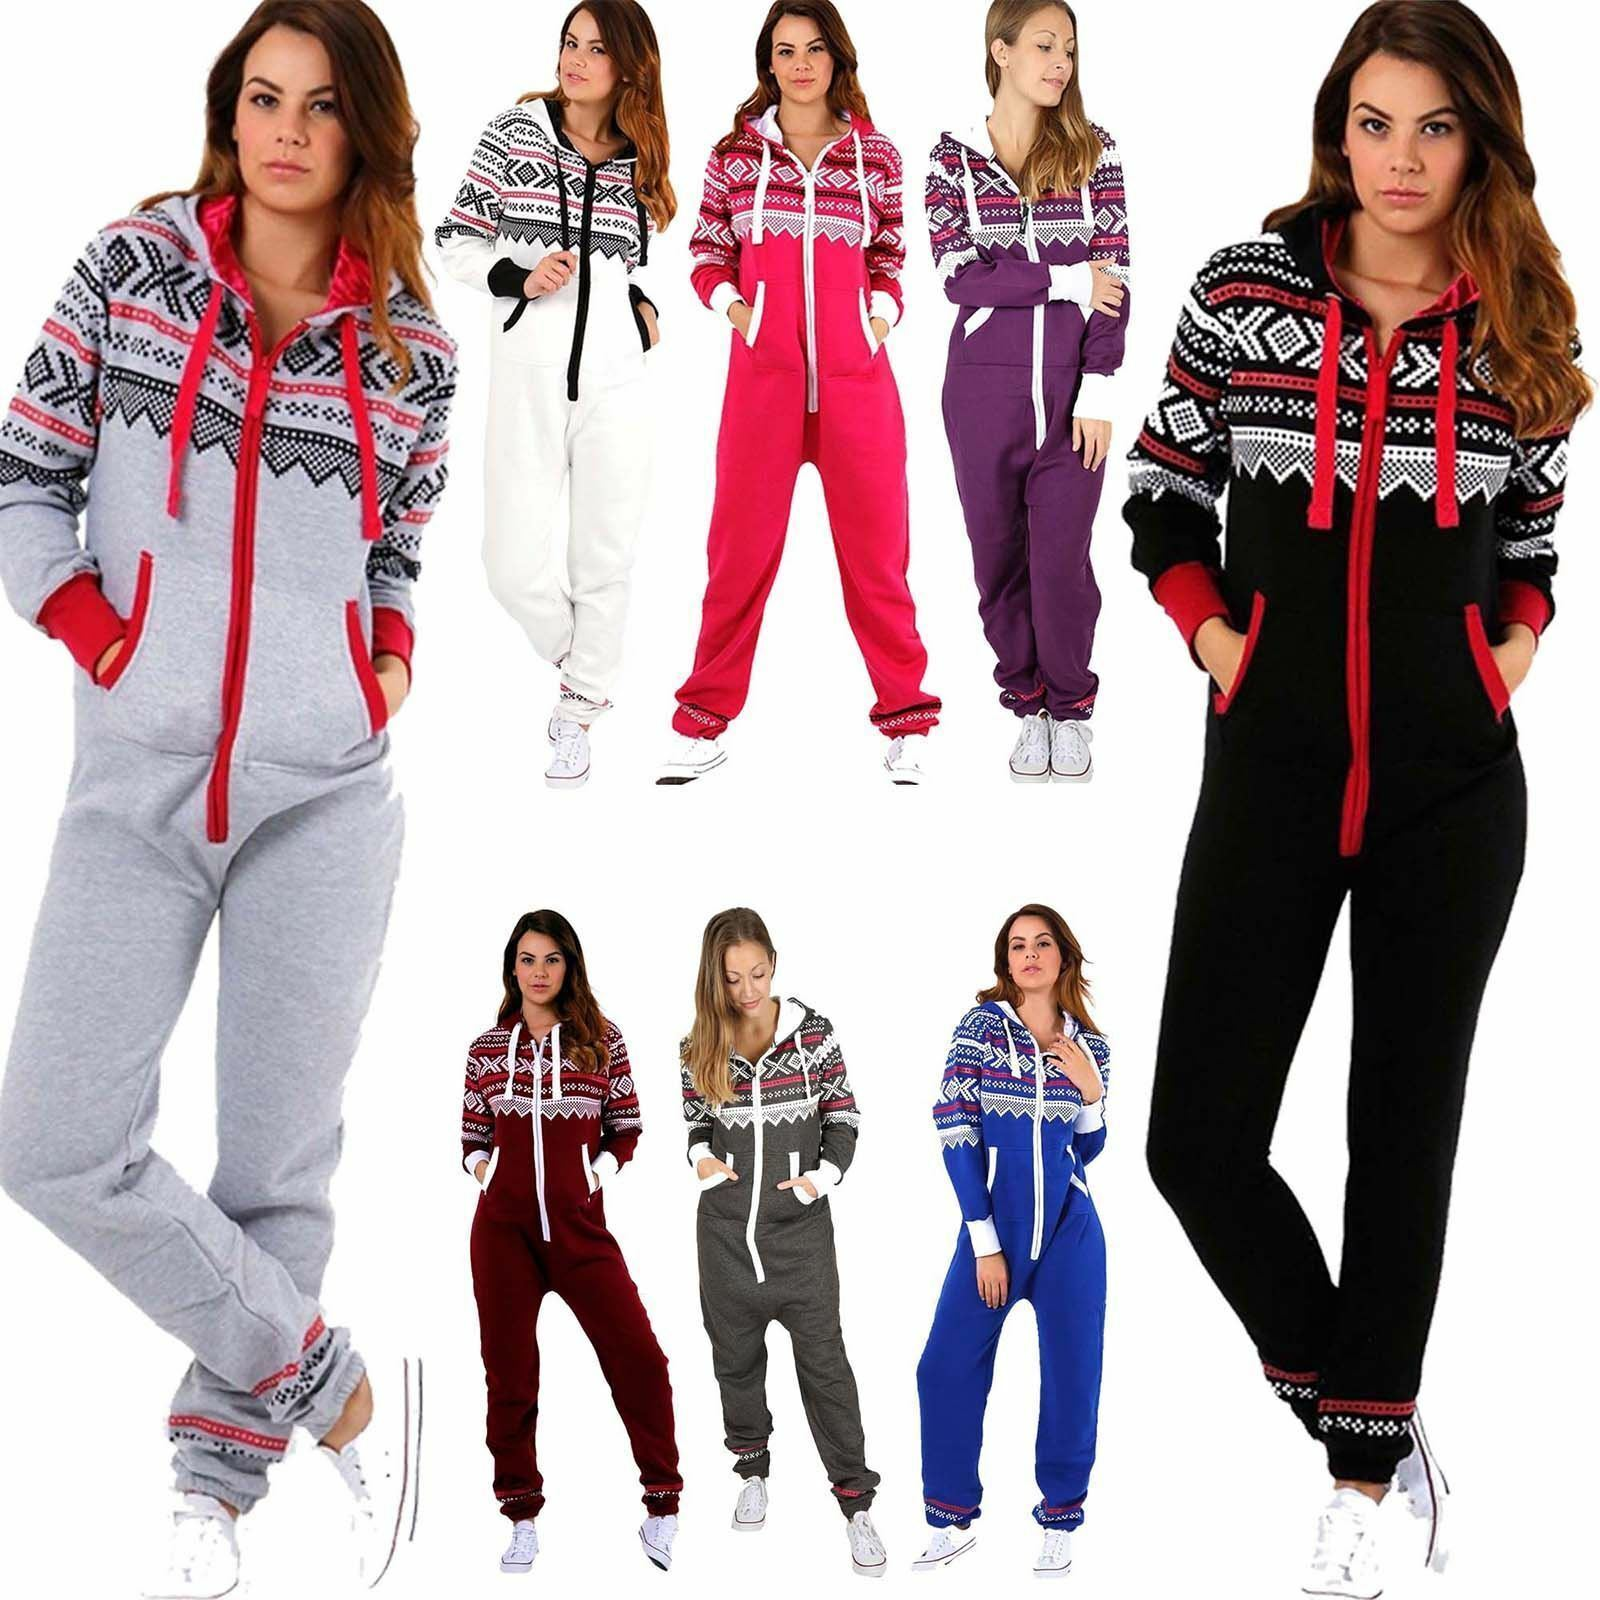 99072c85adf Details about Mens Womens Ladies Adult Aztec Onesie Hooded Playsuit  Jumpsuit All In One Gerber